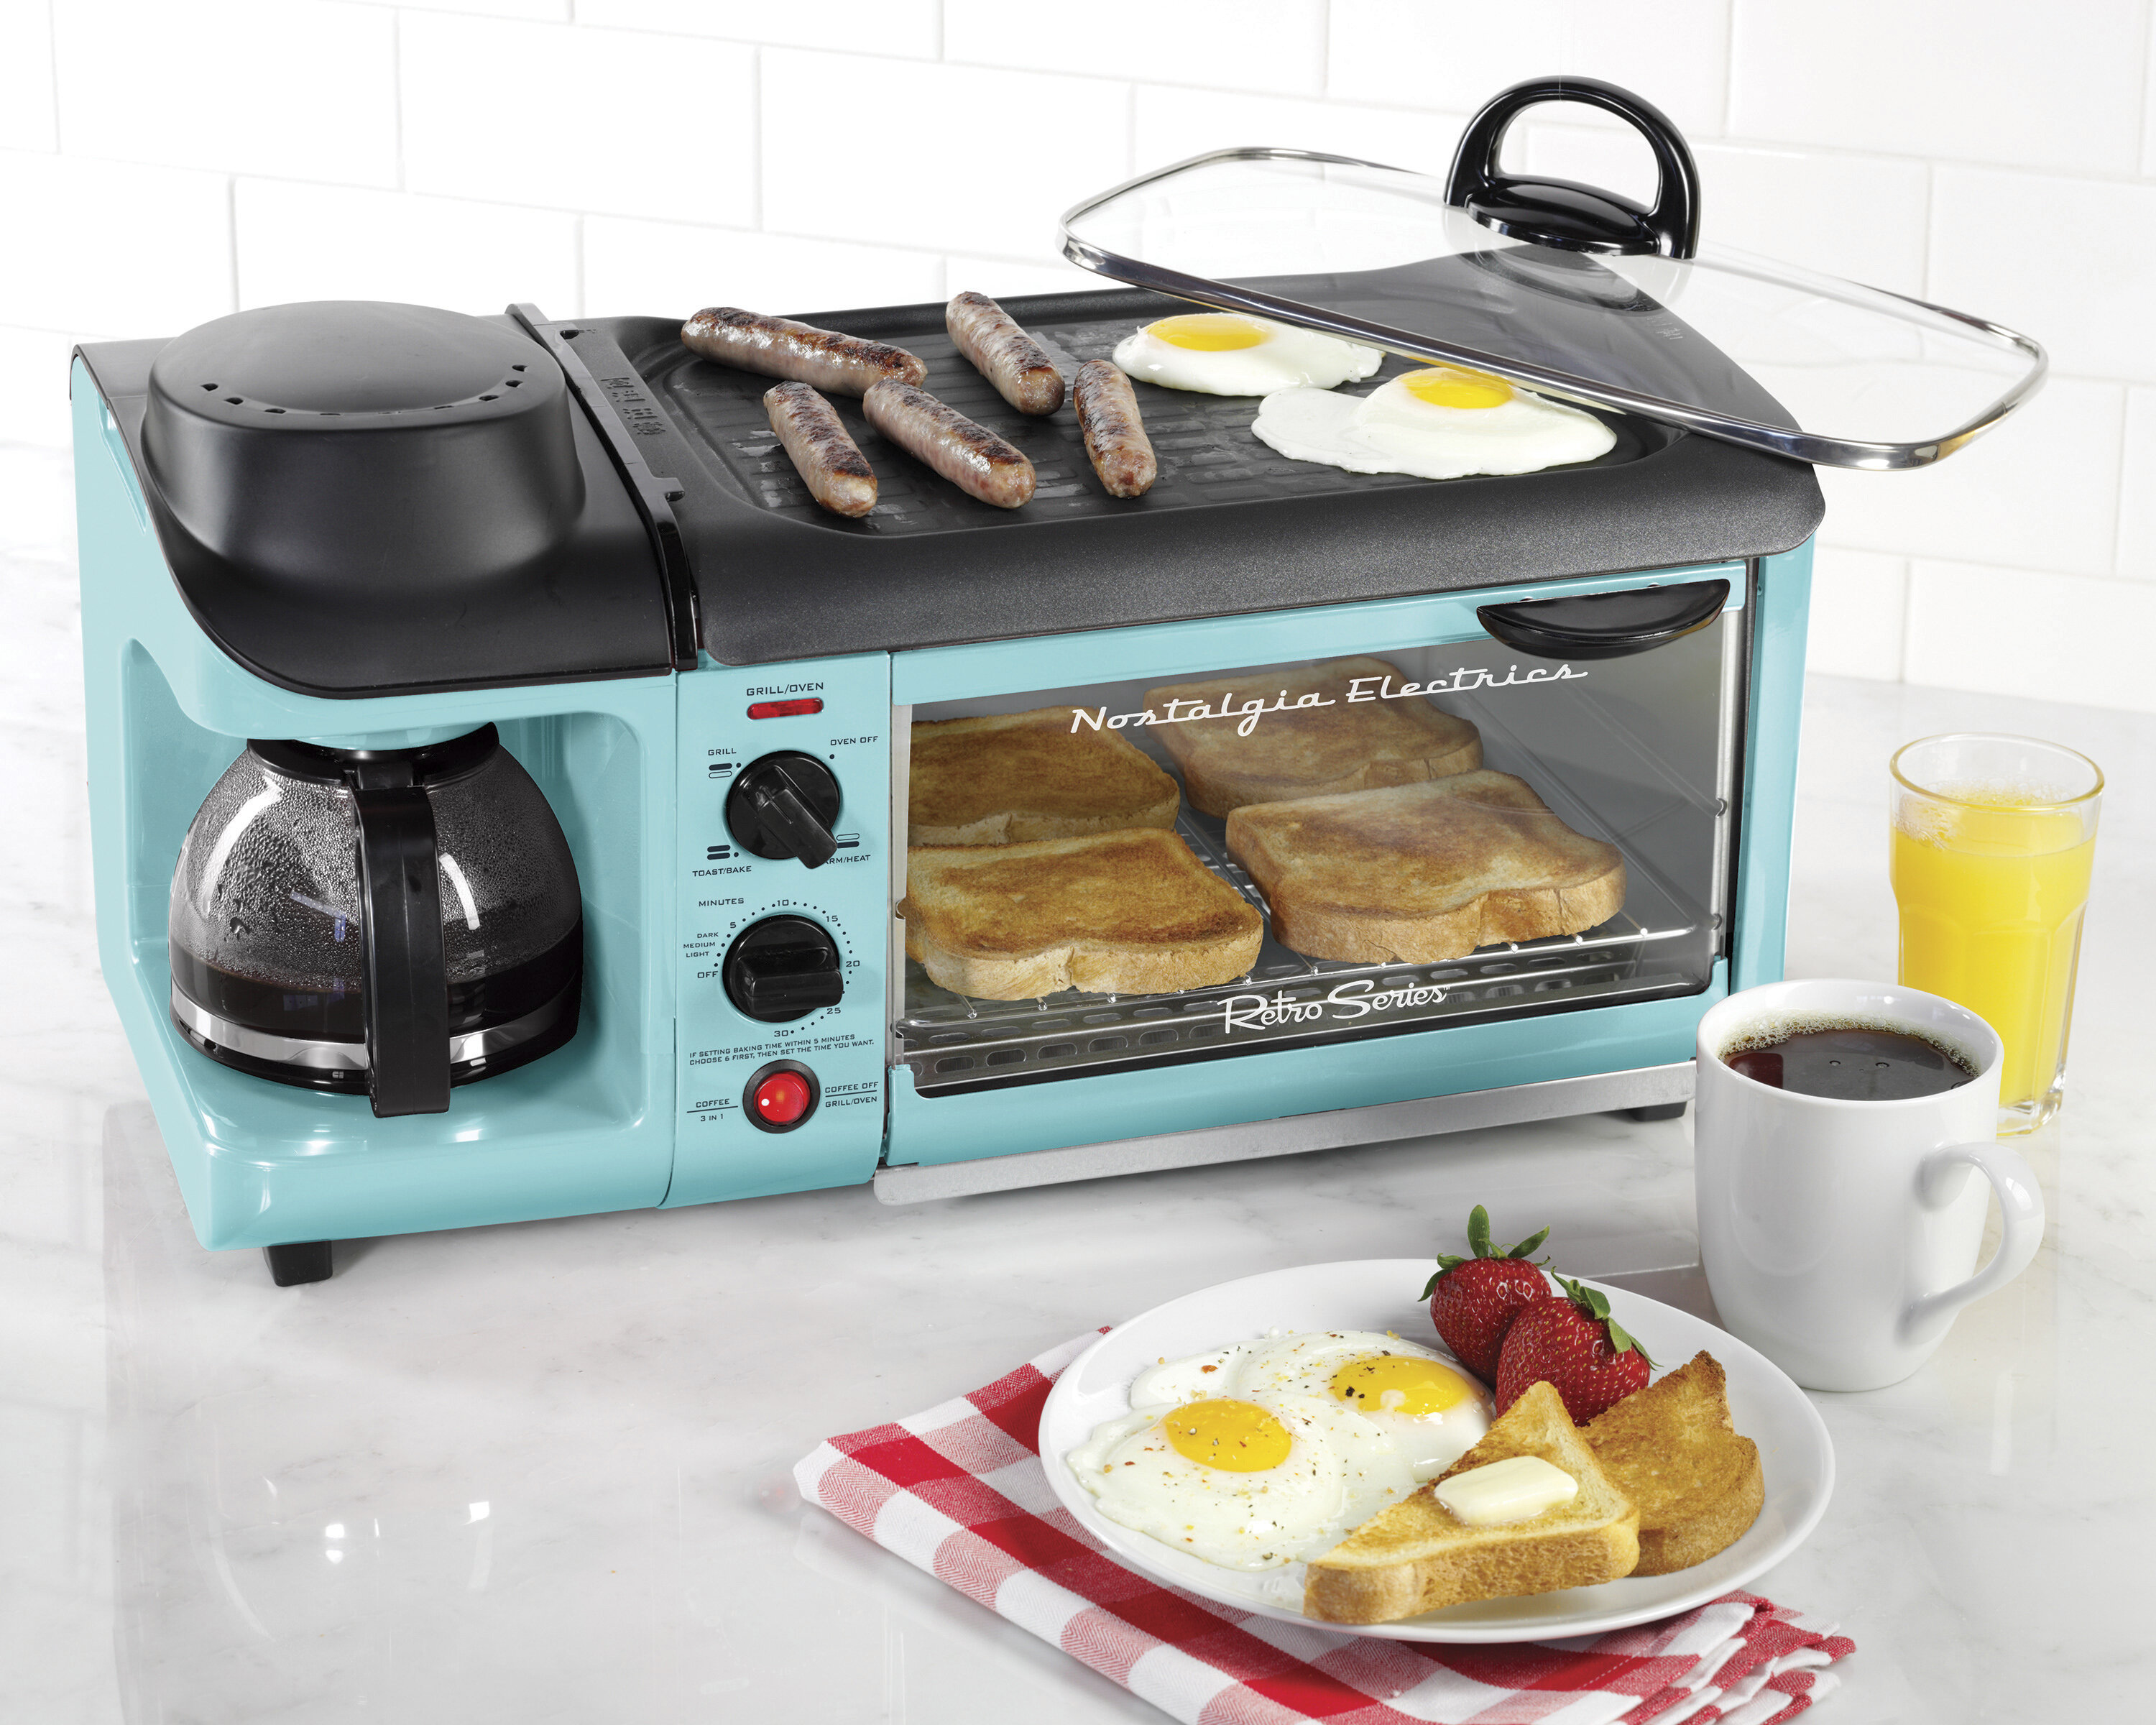 Nostalgia Electrics 4-Cup Retro Series 3-in-1 Breakfast Station ...